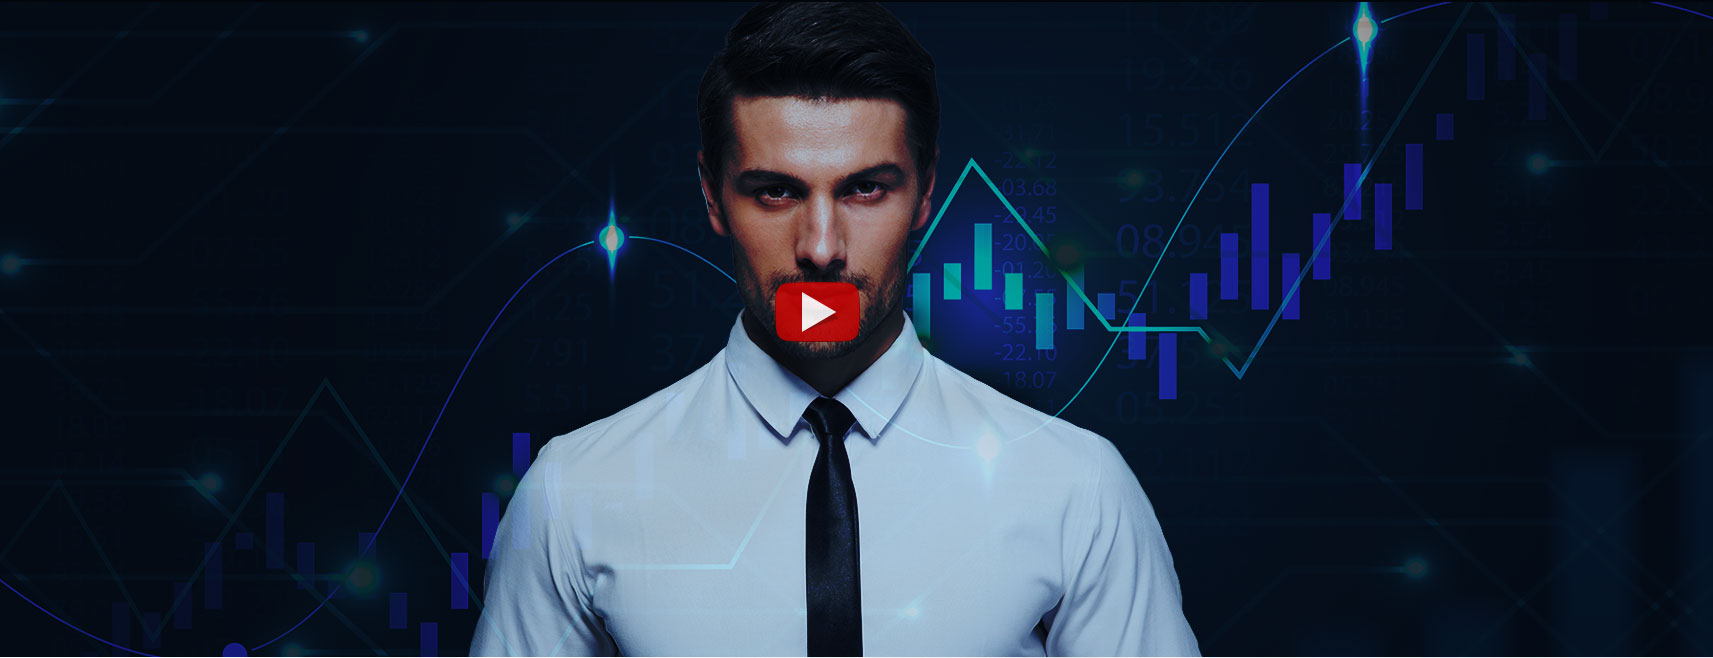 Xtrade Video intro